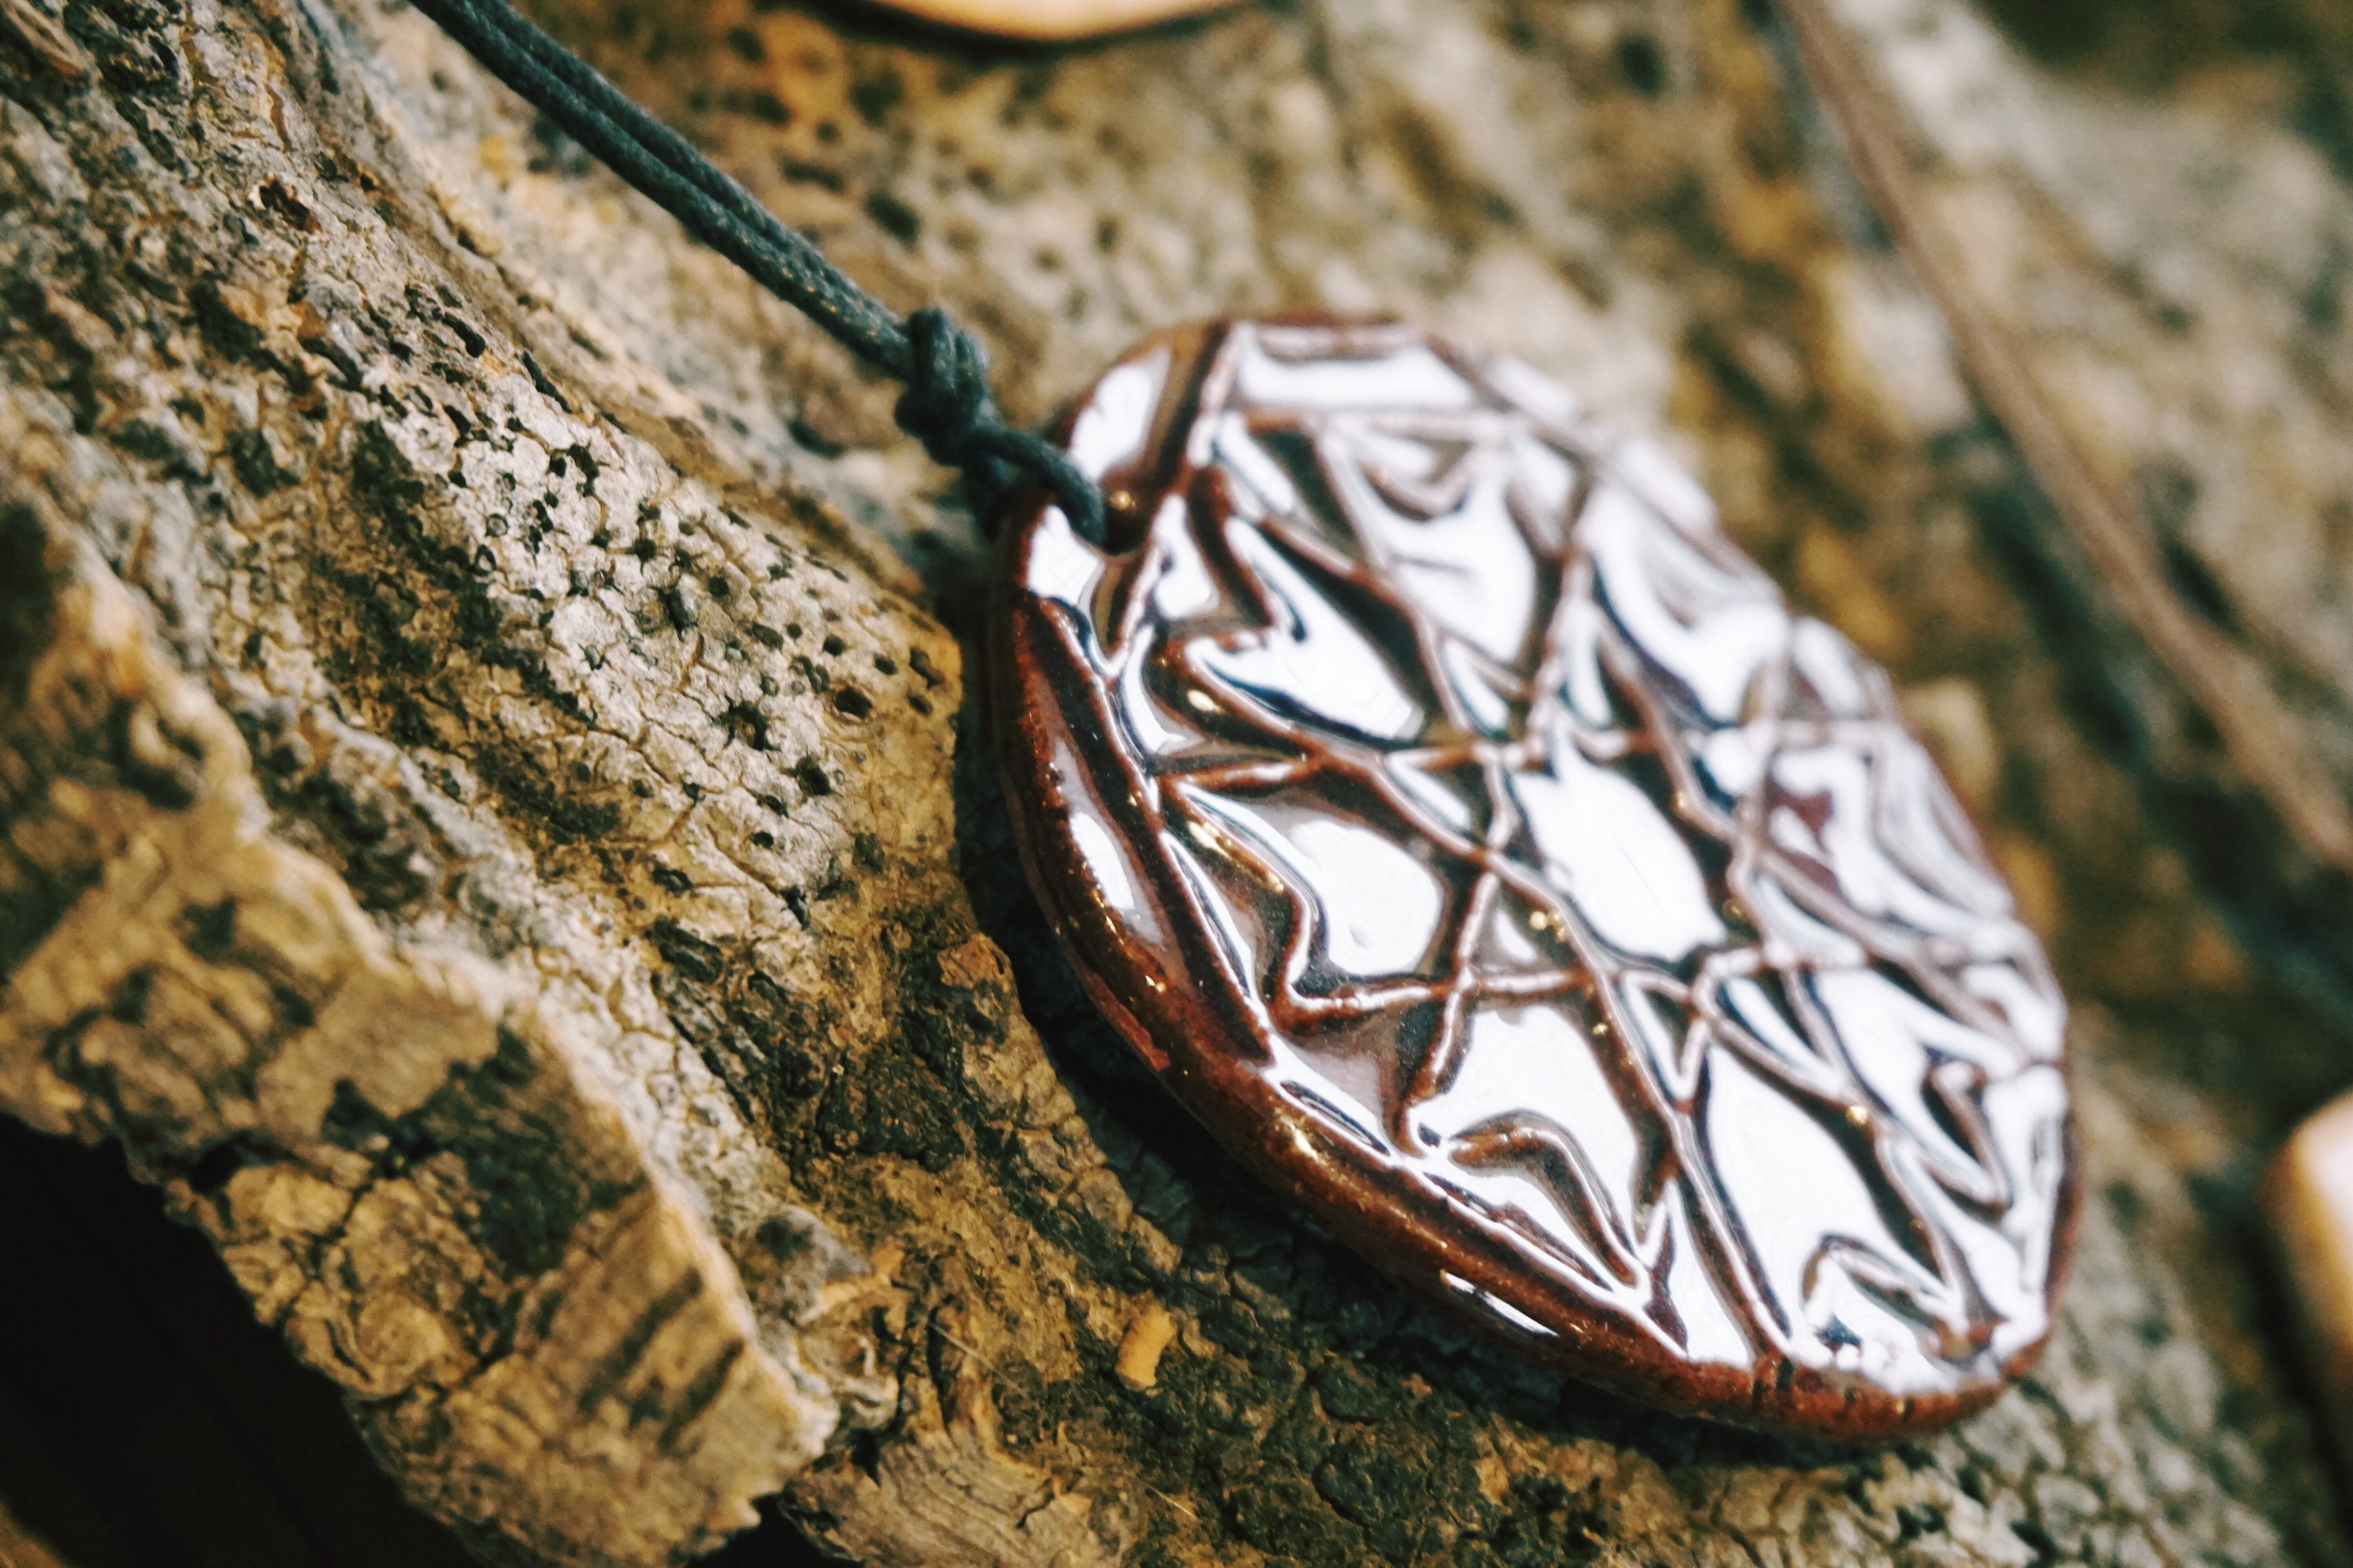 Geometric pendant necklace from the Alentejo